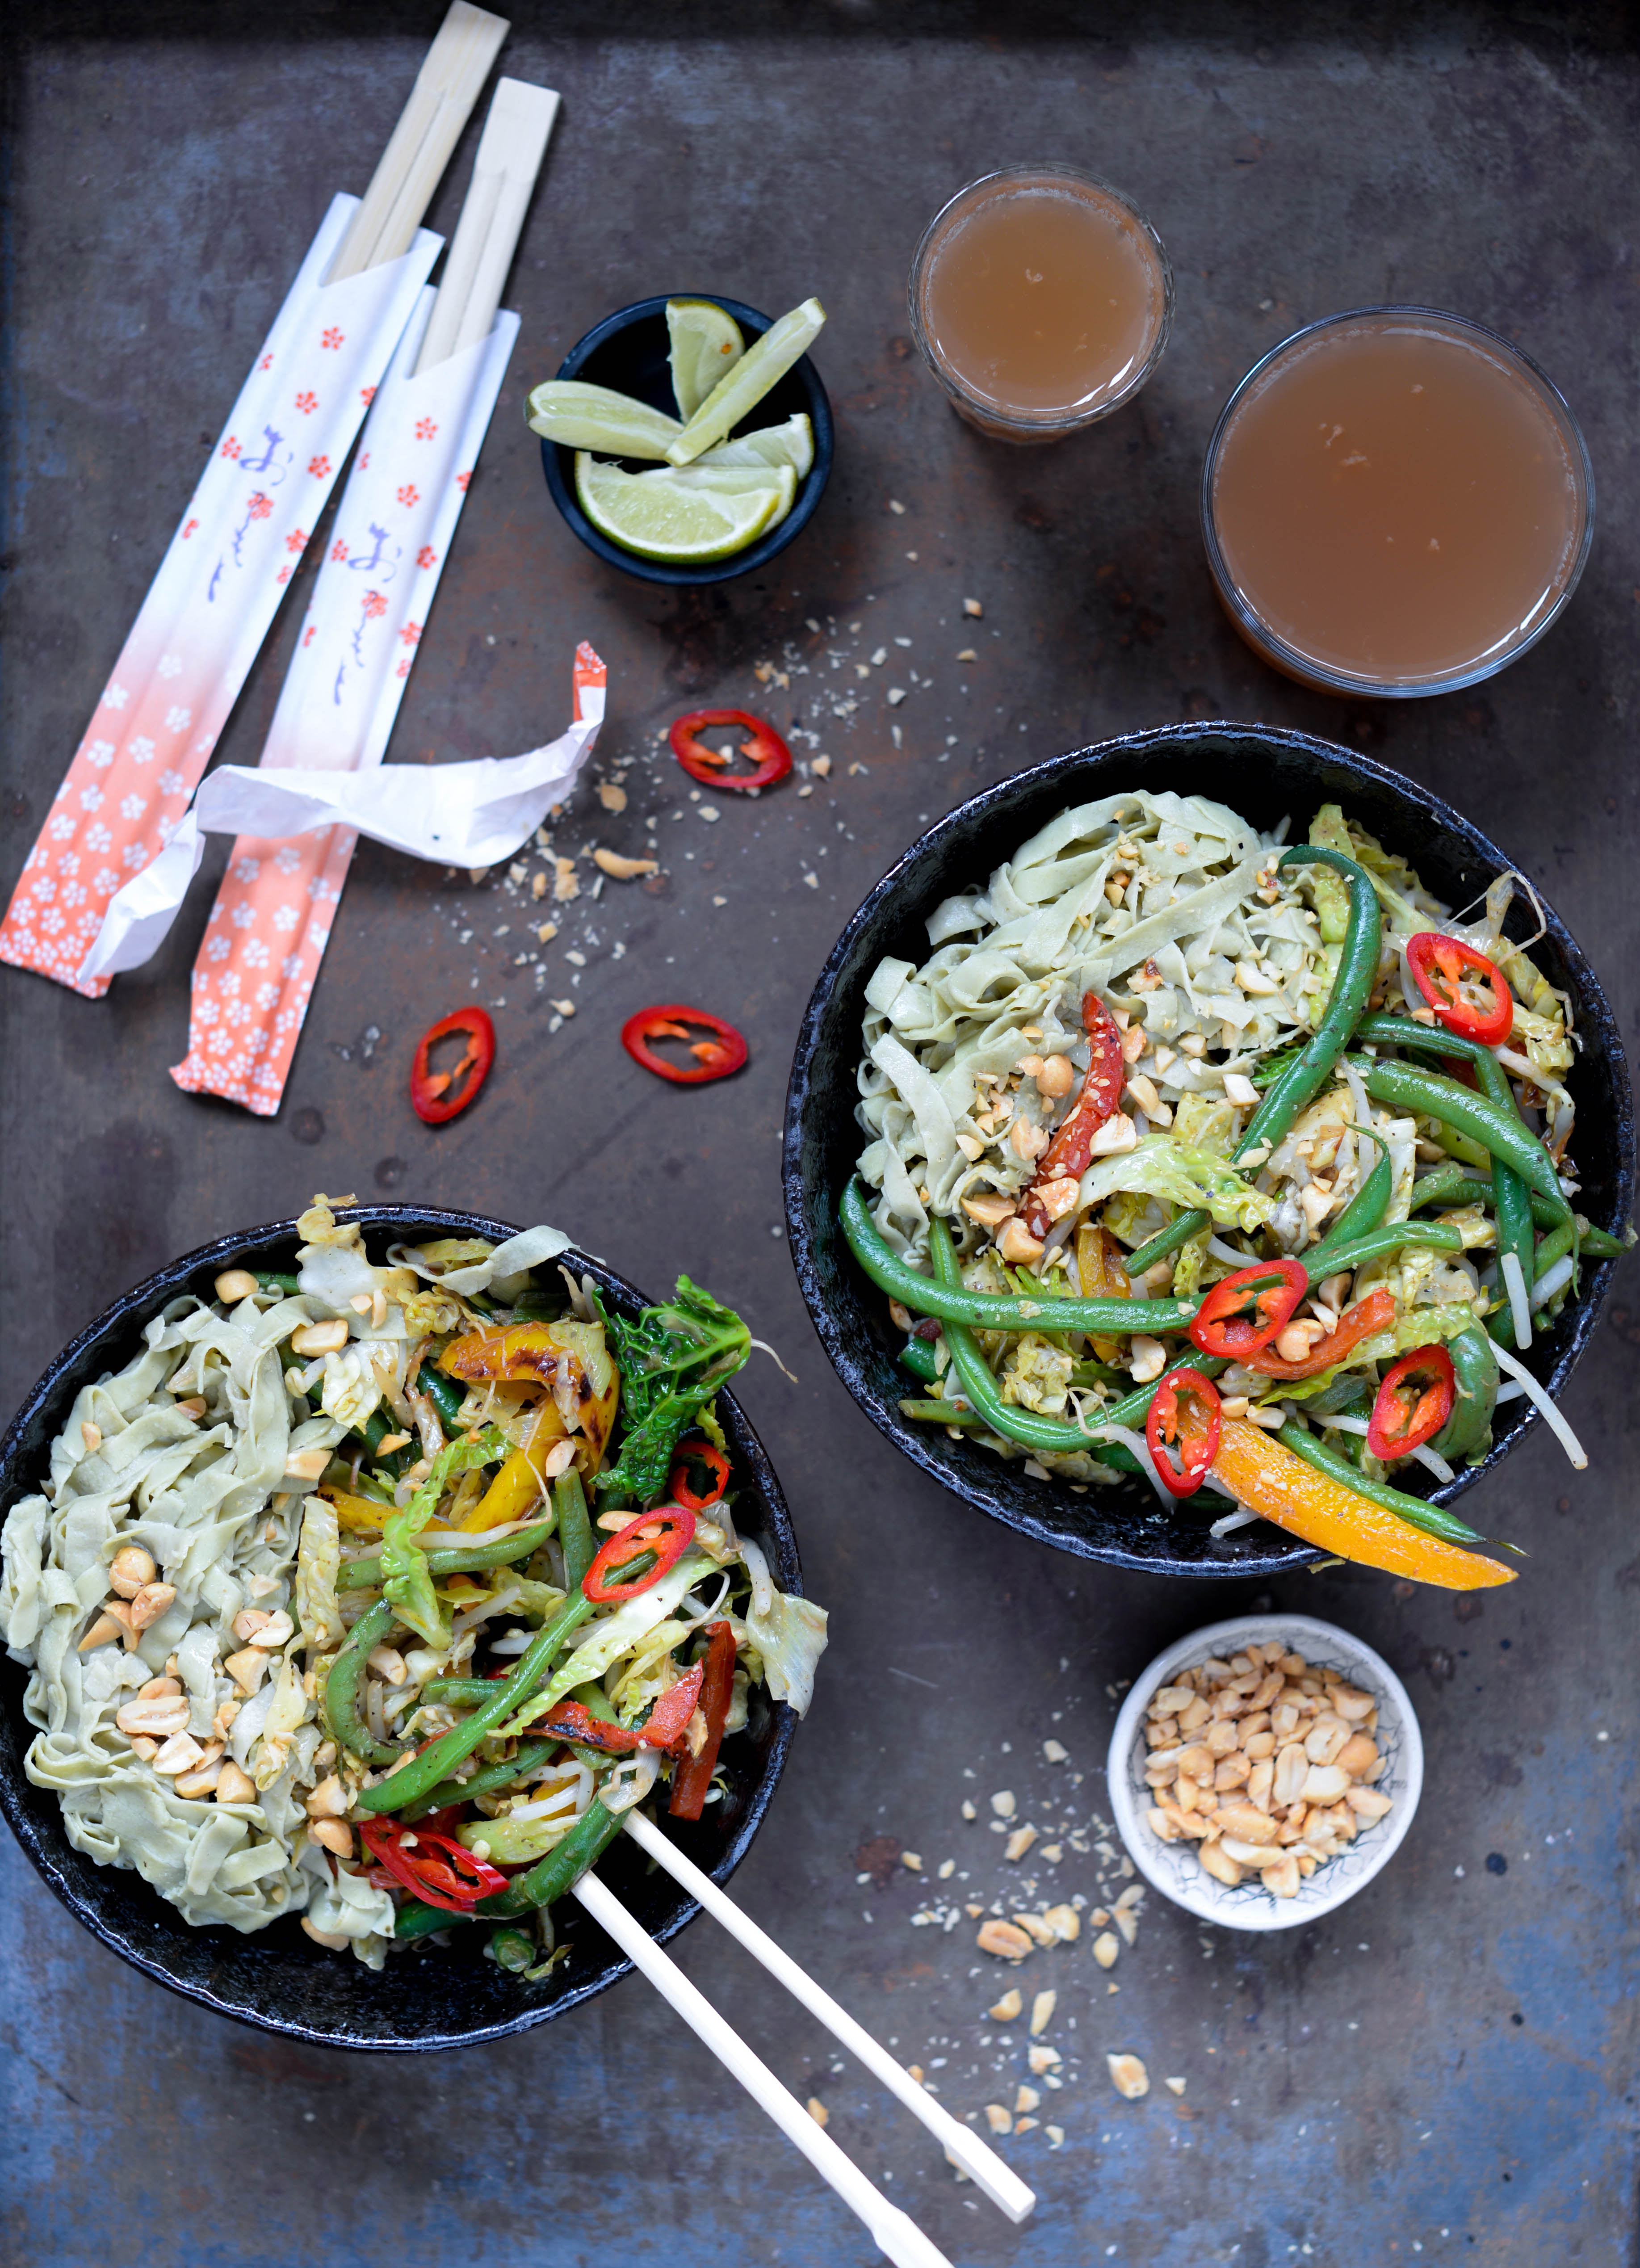 Green Thai curry med edamame nudler